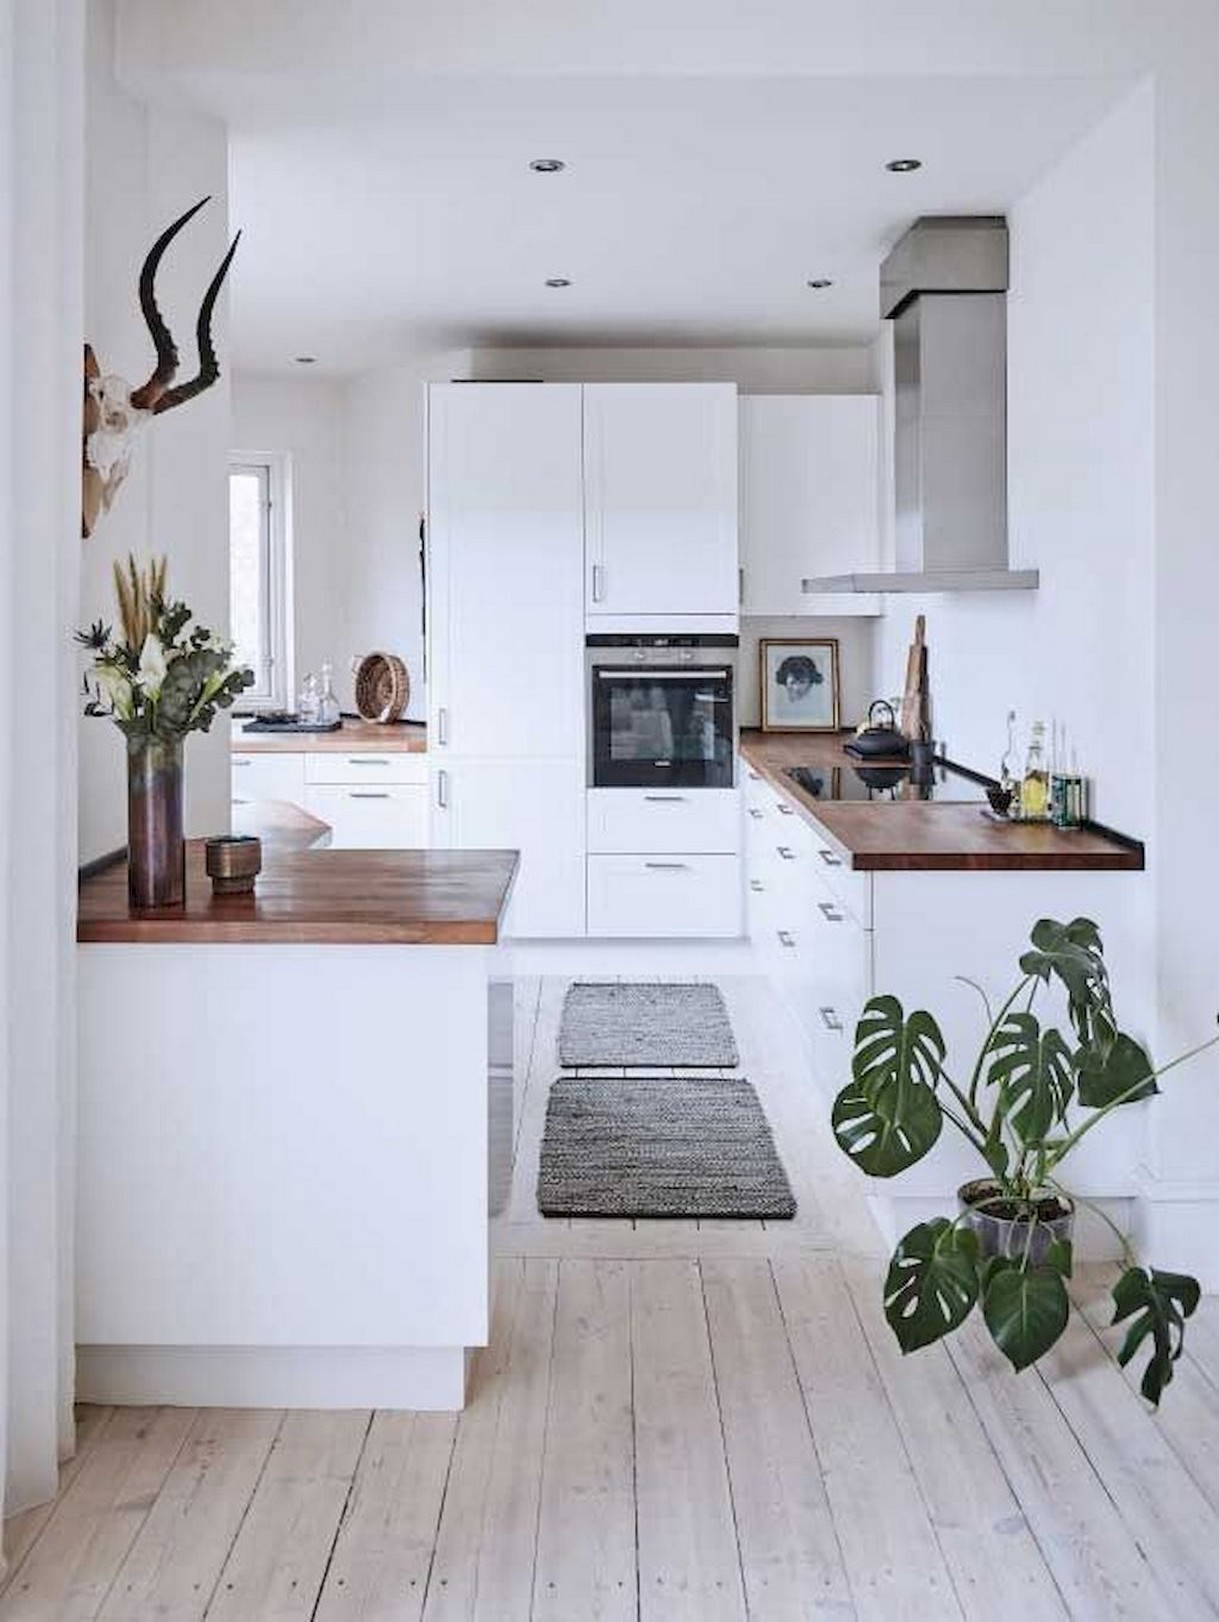 86 Some Small Kitchen Ideas To Help You Do Up Your Kitchen 21